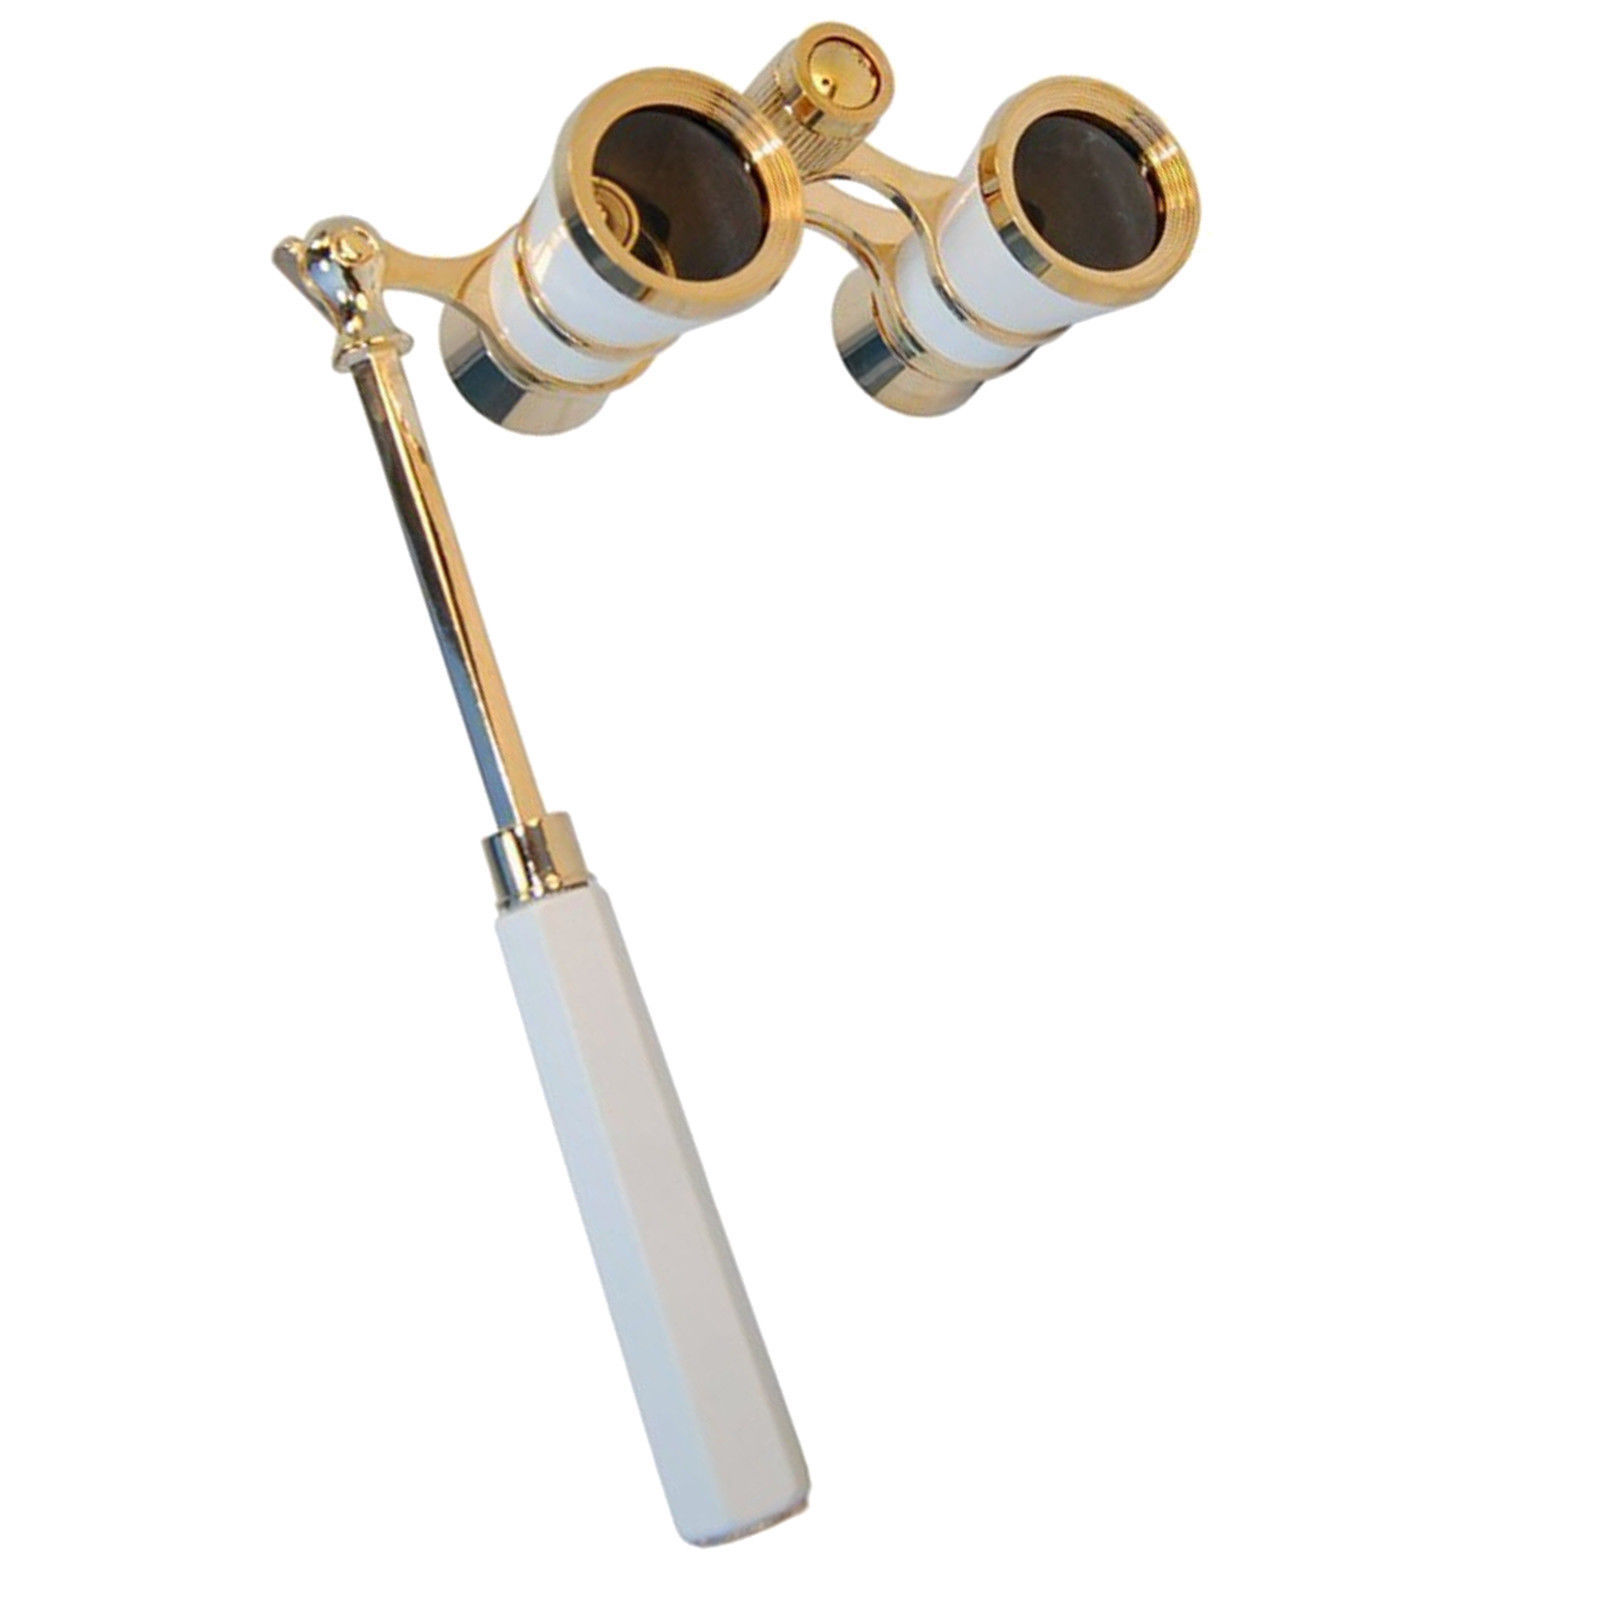 Primary image for HQRP Opera Glasses White-Pearl with Gold Trim with Built-In Extendable Handle